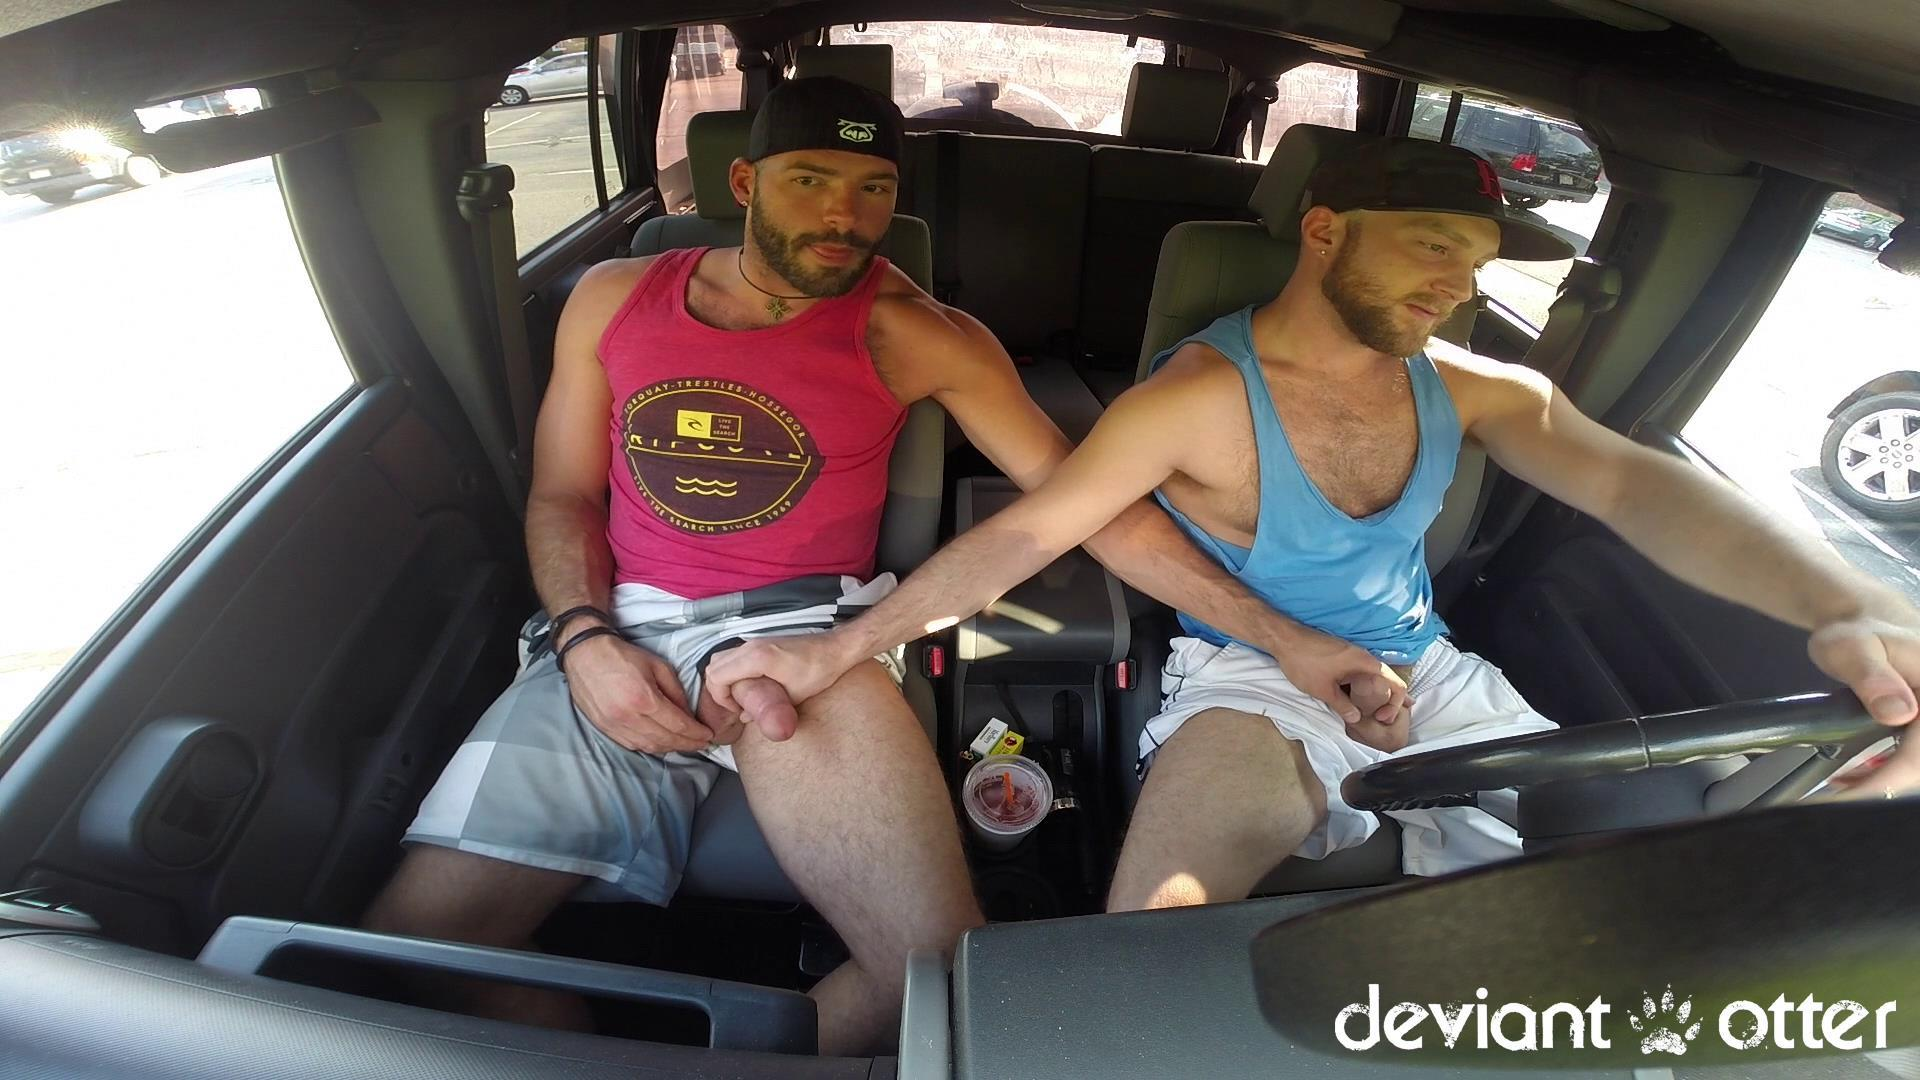 Deviant Otter Xavier Sucking Cock In Public Hairy Guys Amateur Gay Porn 04